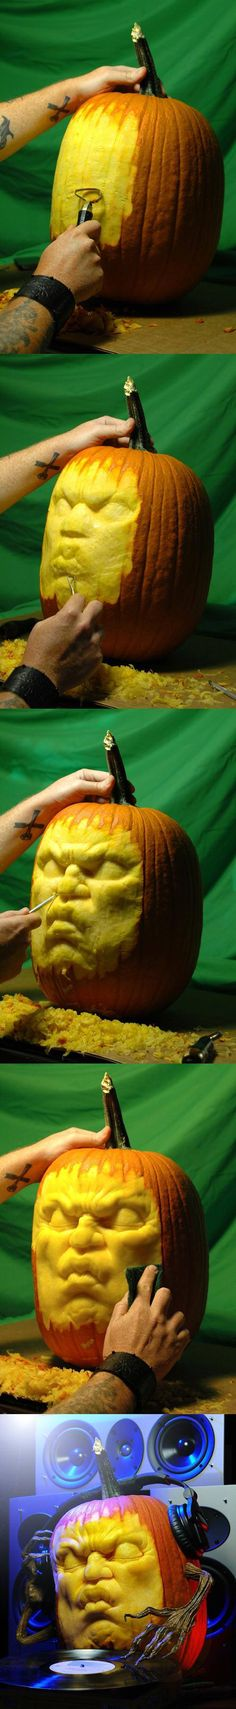 Pumpkin carving tutorial